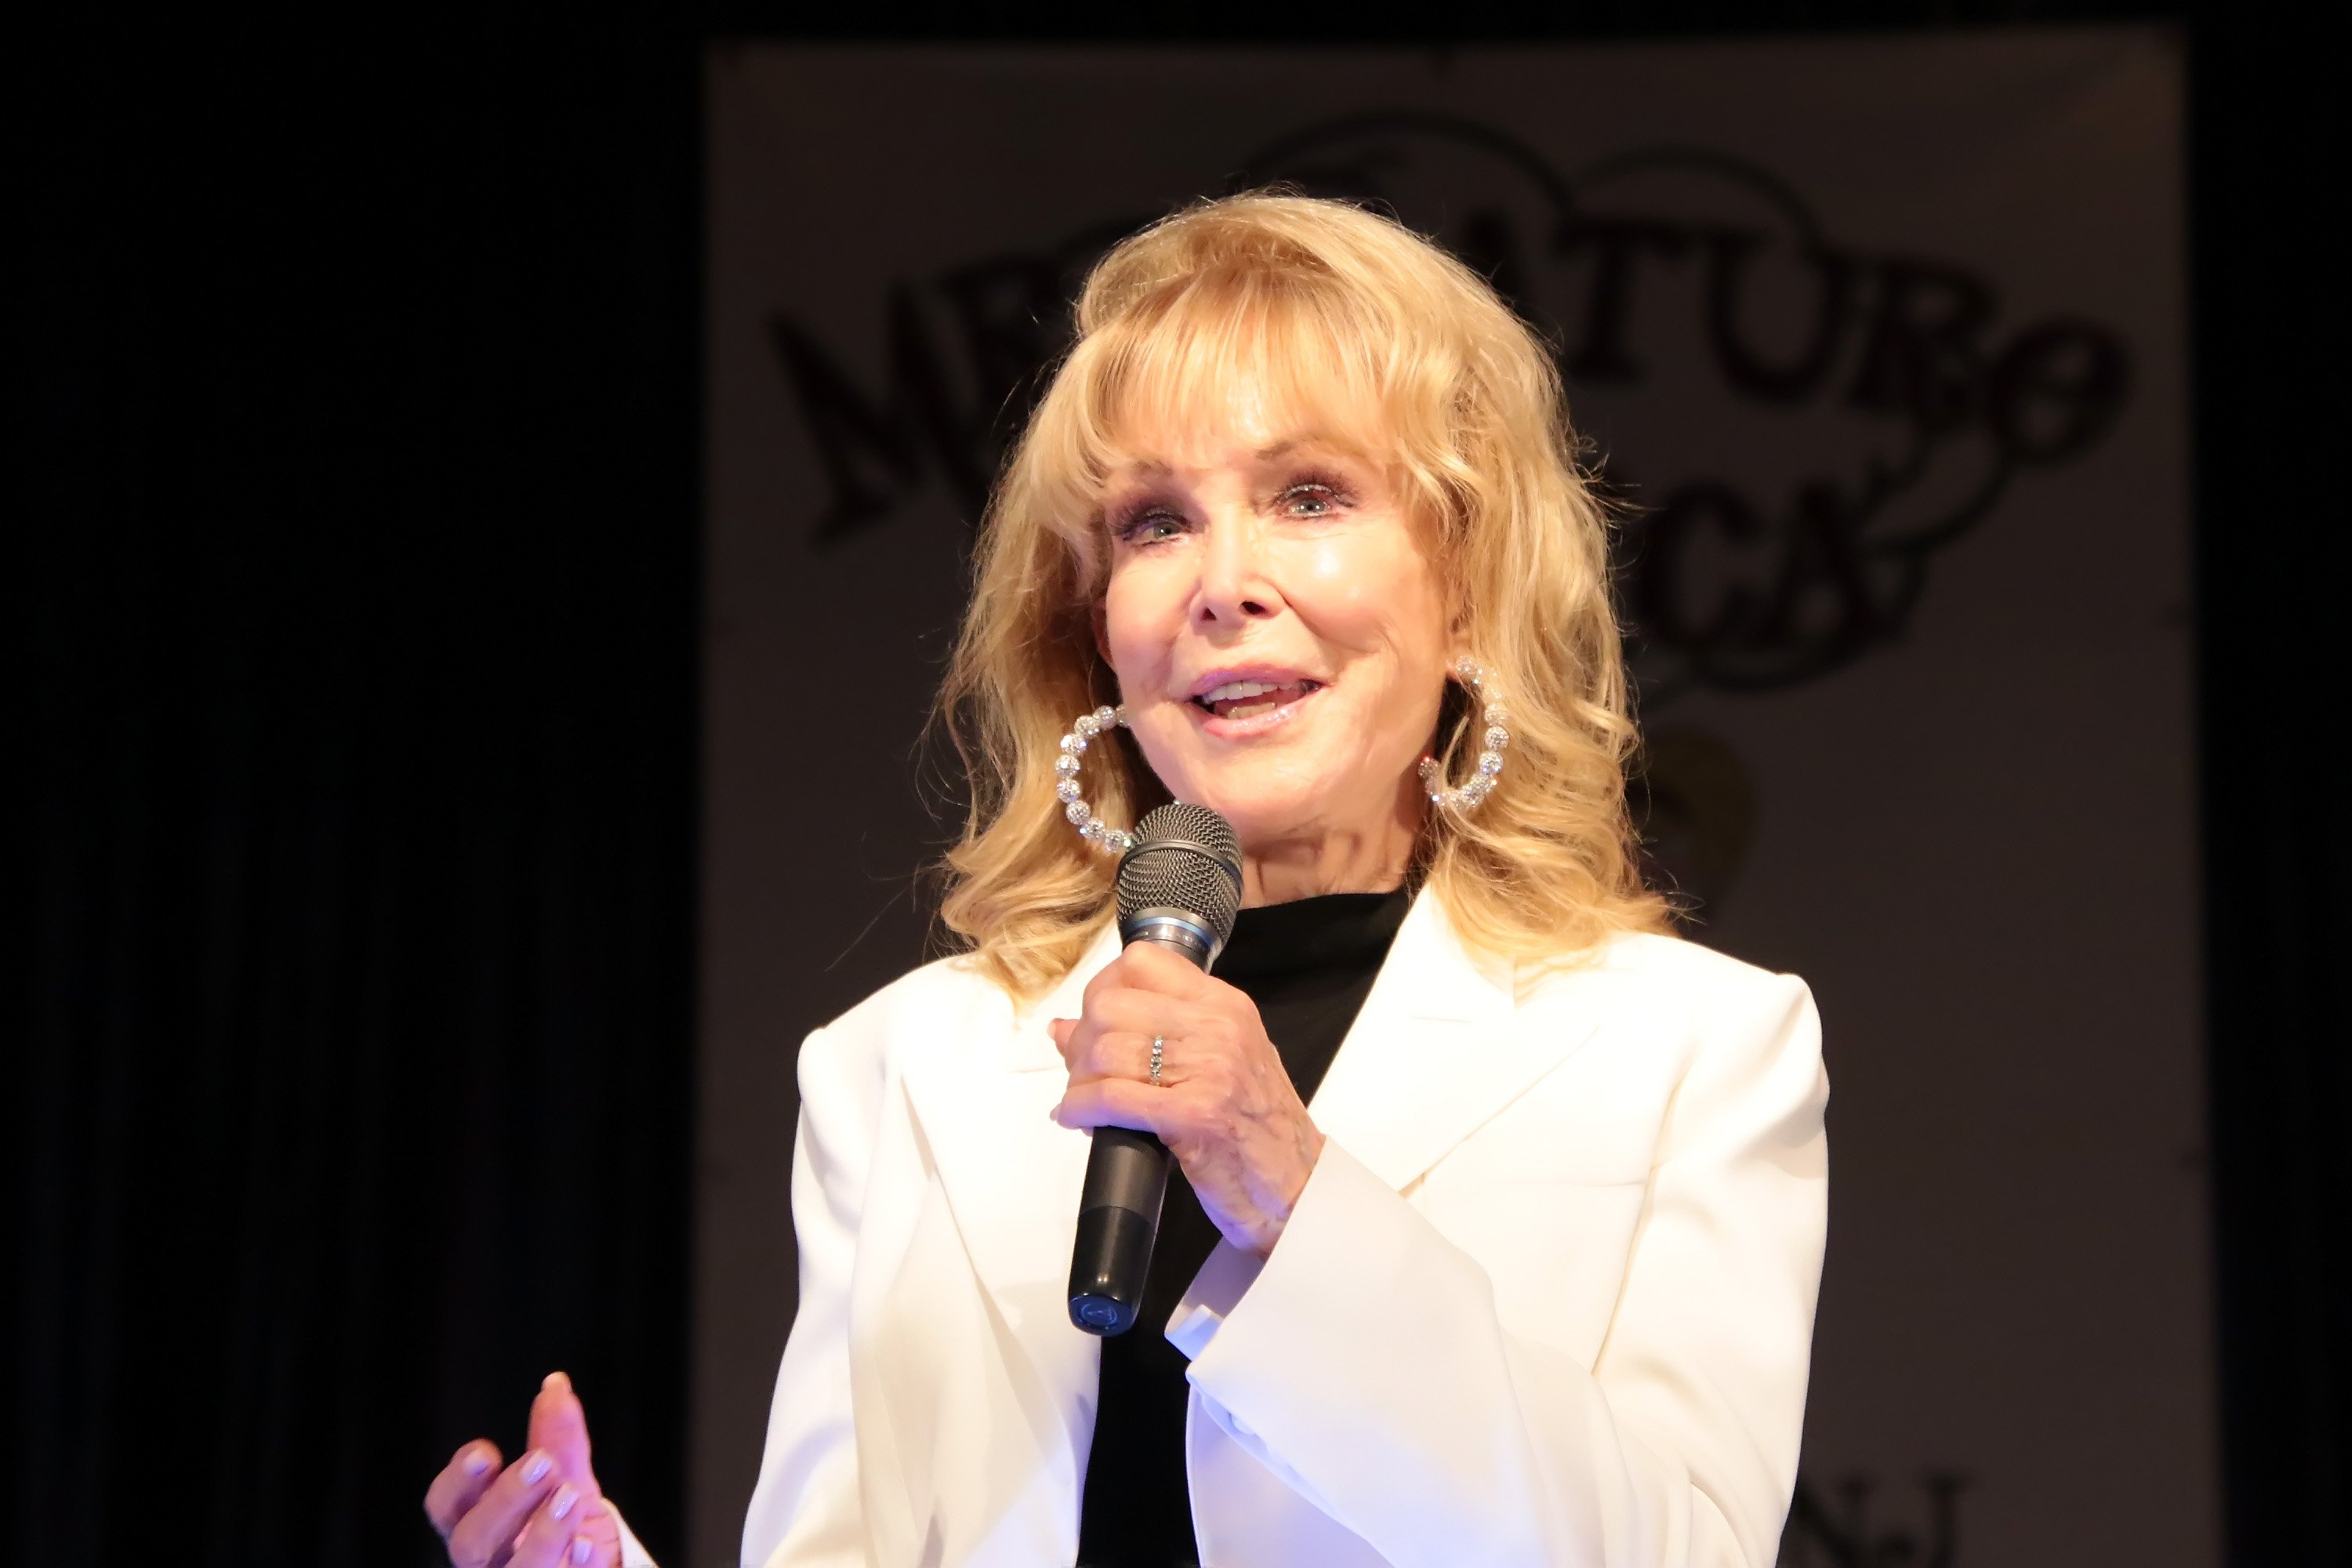 Barbara Eden, Special Guest & Emcee hosts the 2019 Mr. Mature America Pageant at the at Ocean City Music Pier on April 13, 2019 | Photo: Getty Images